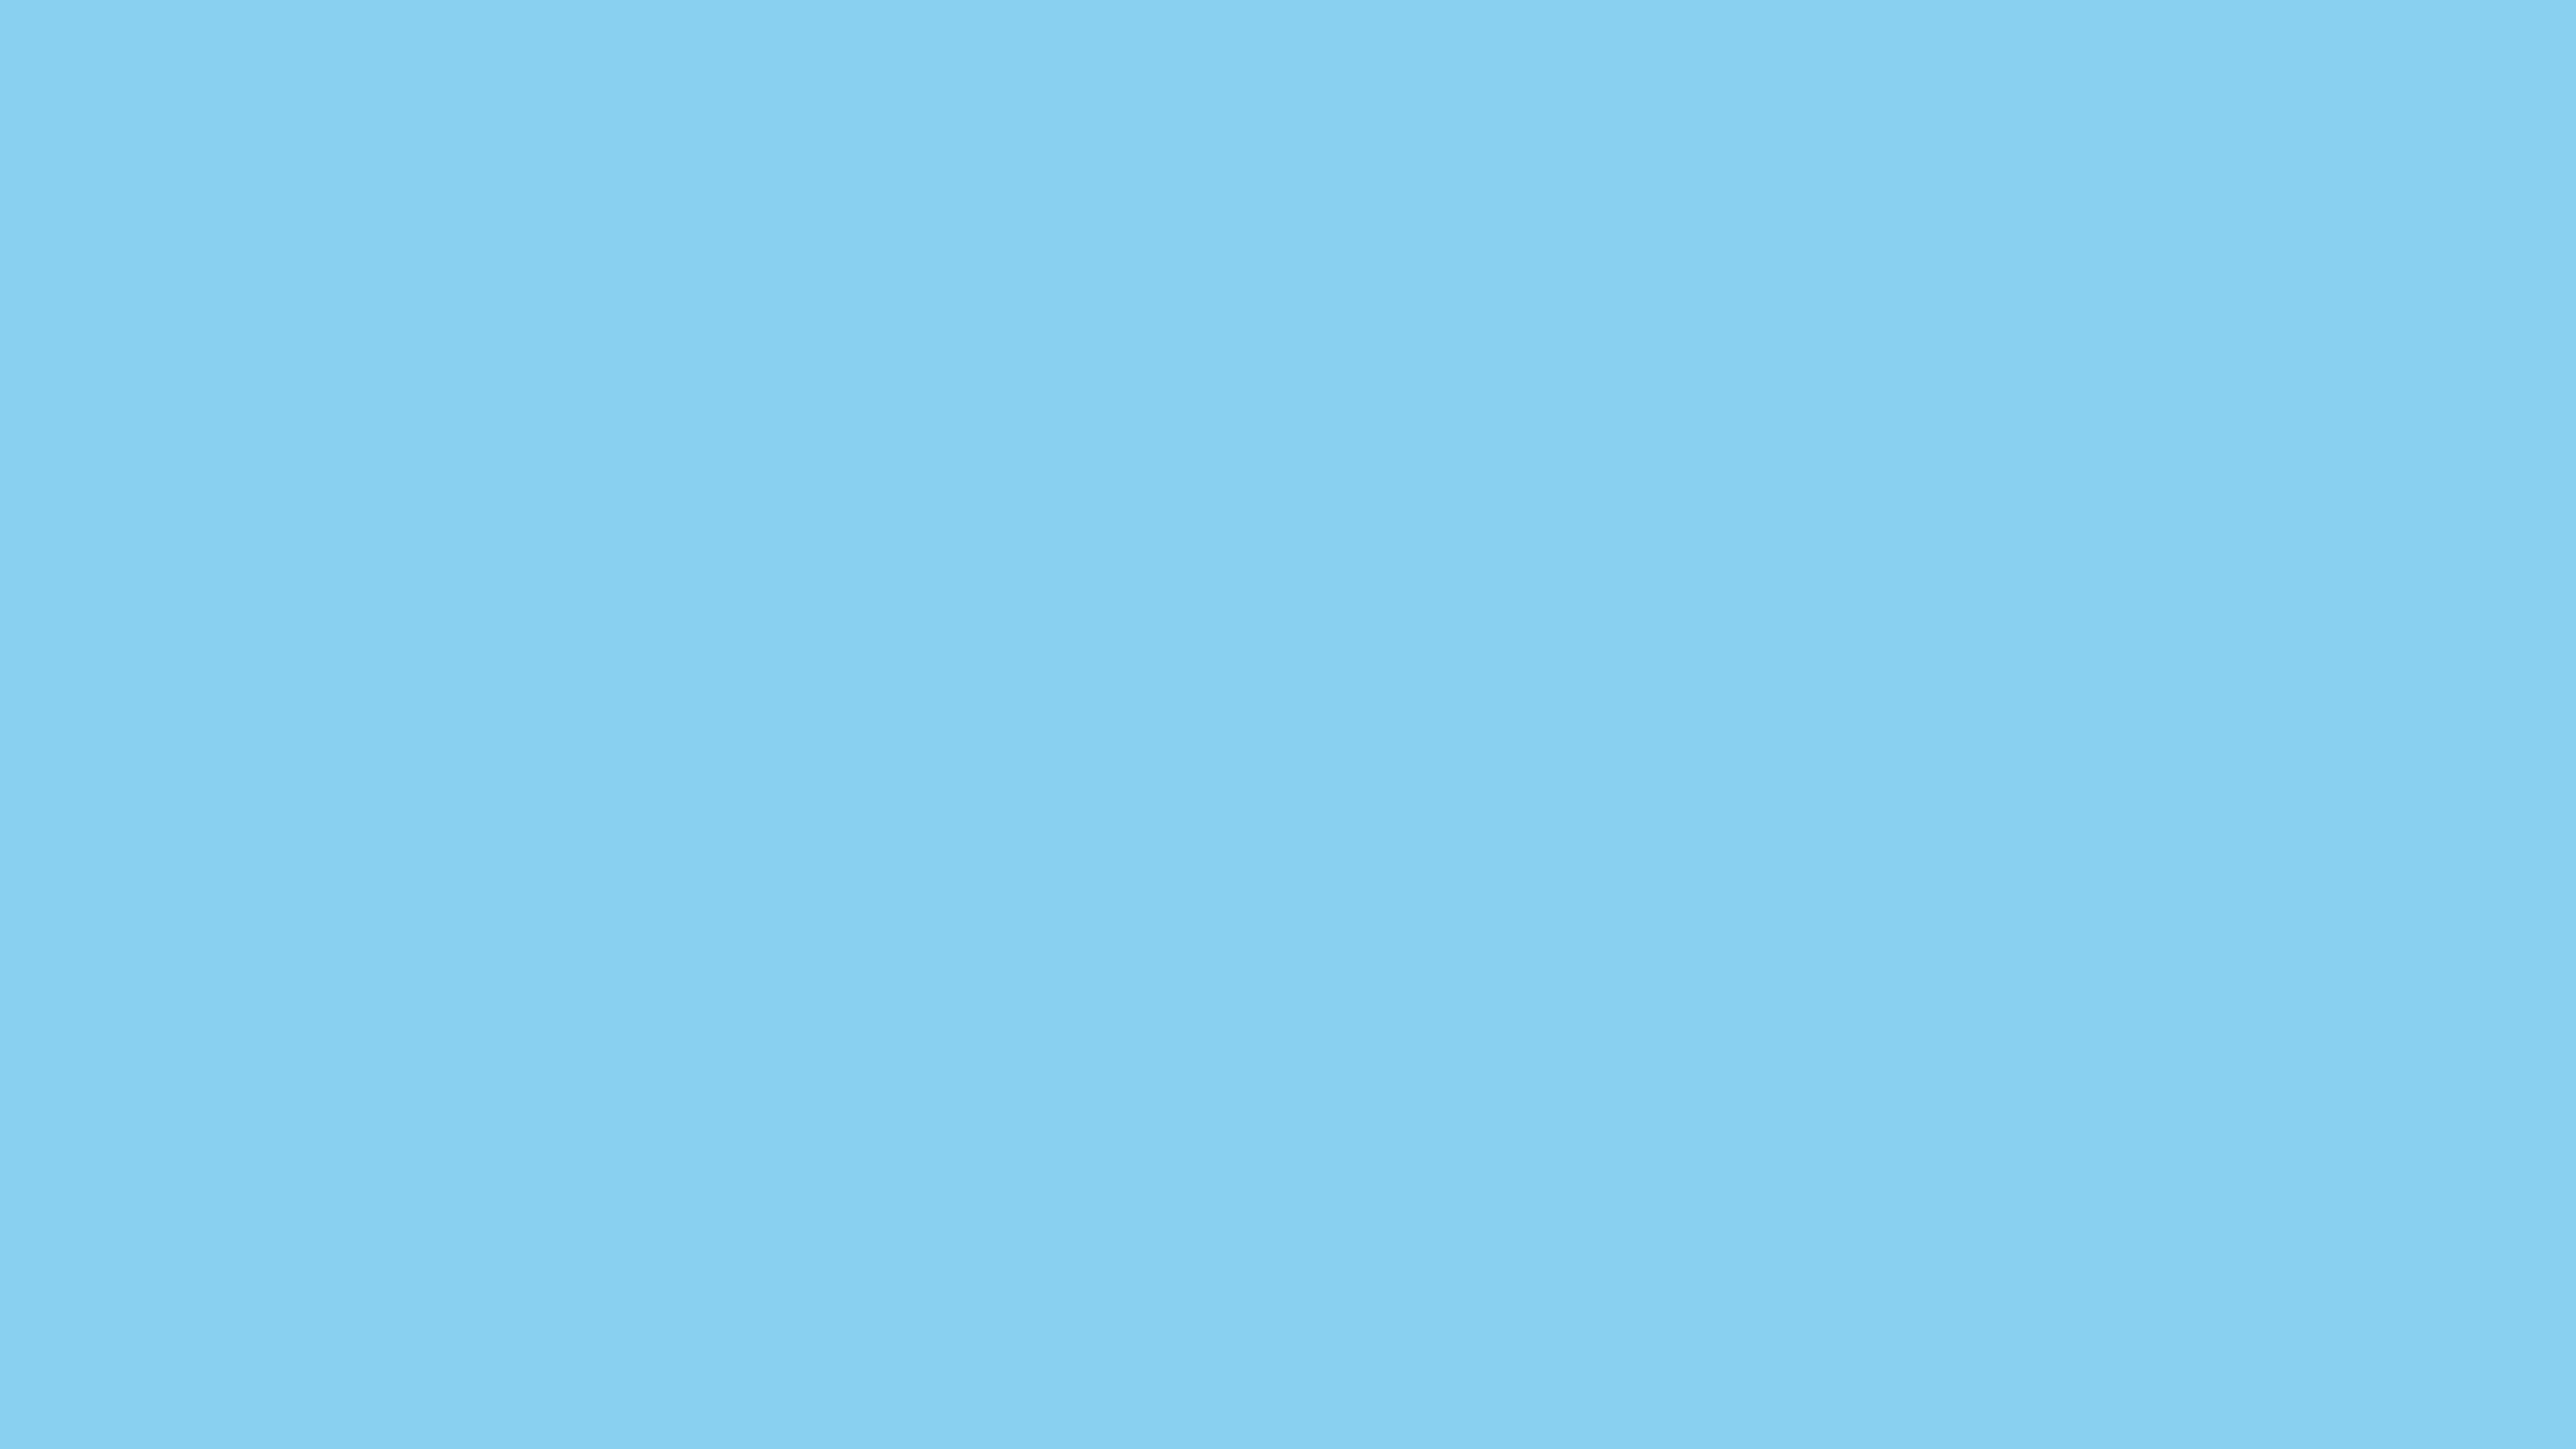 7680x4320 Baby Blue Solid Color Background